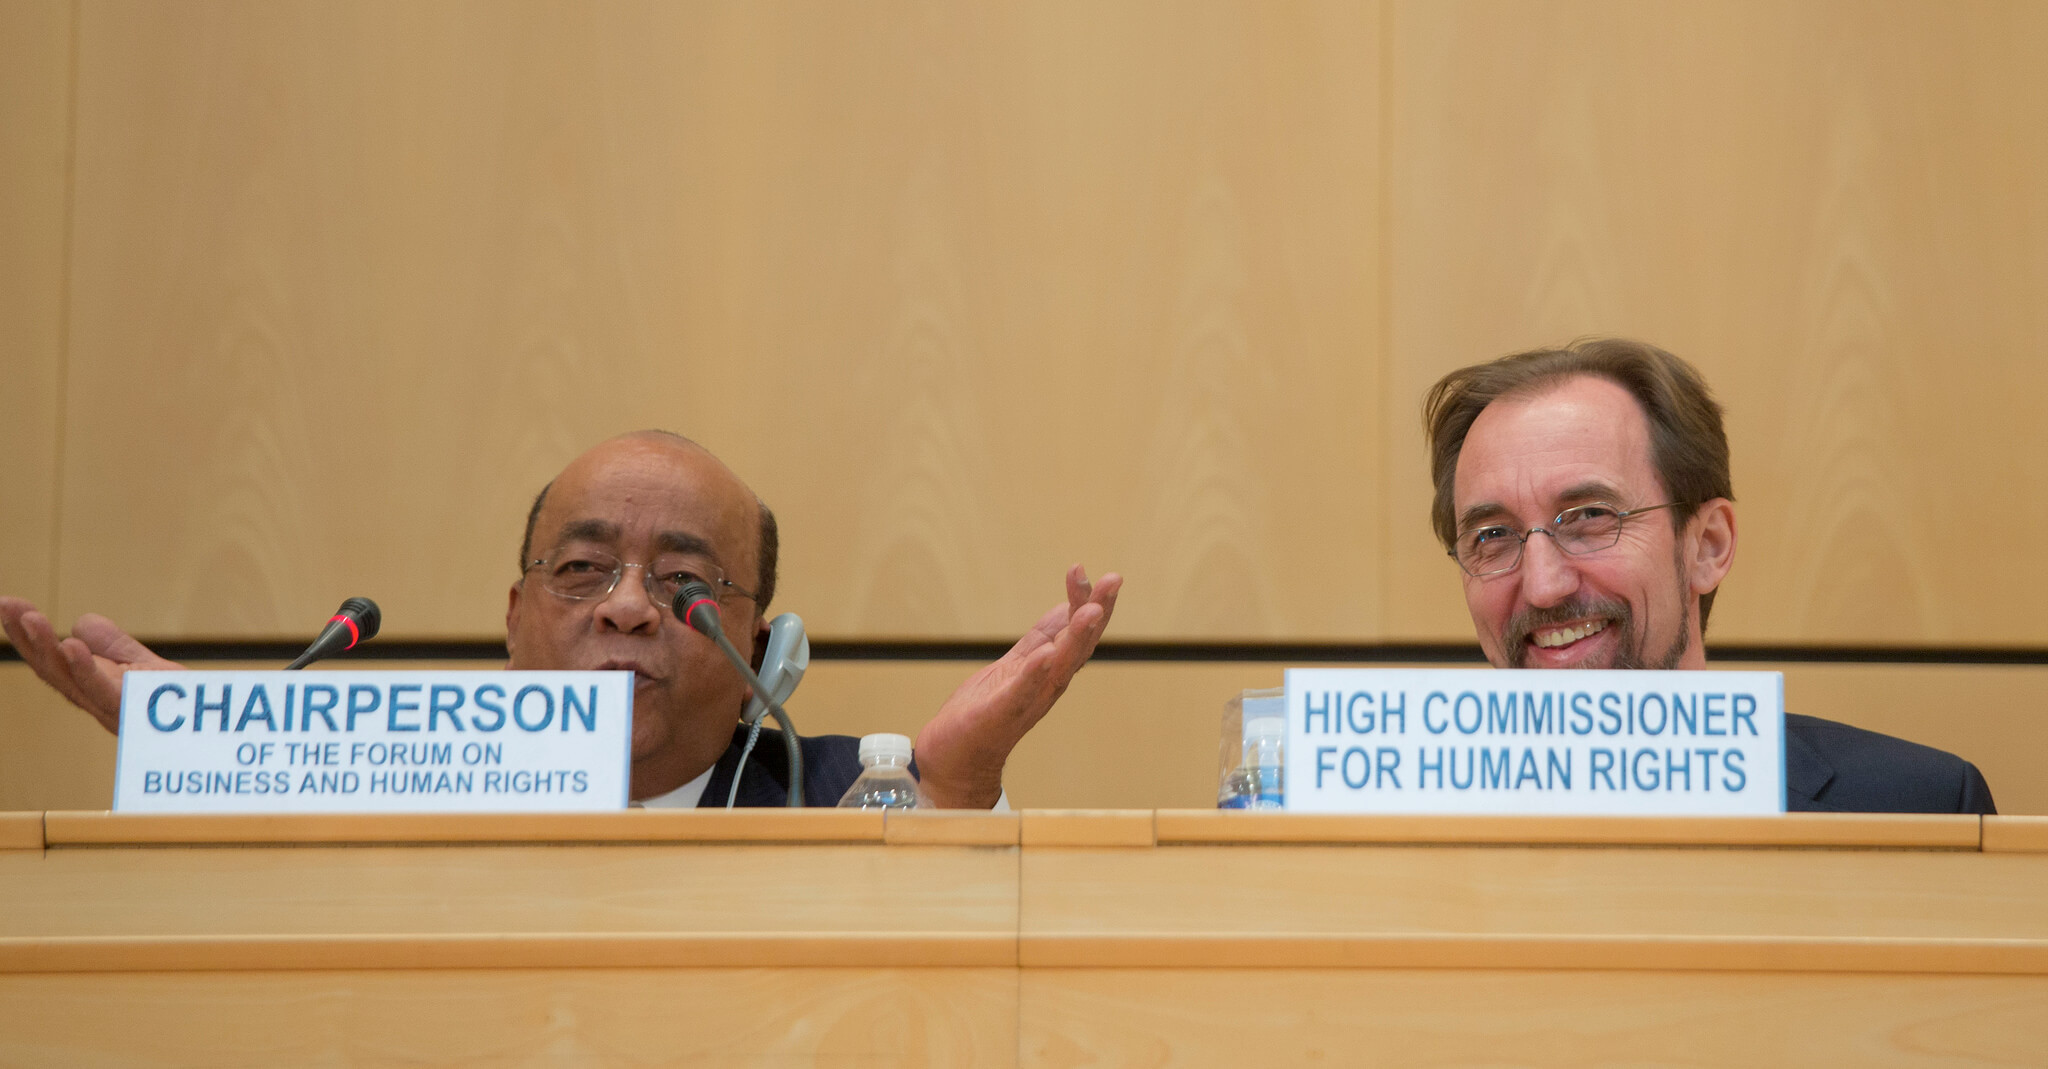 Towards an International Legally Binding Instrument on Business and Human Rights